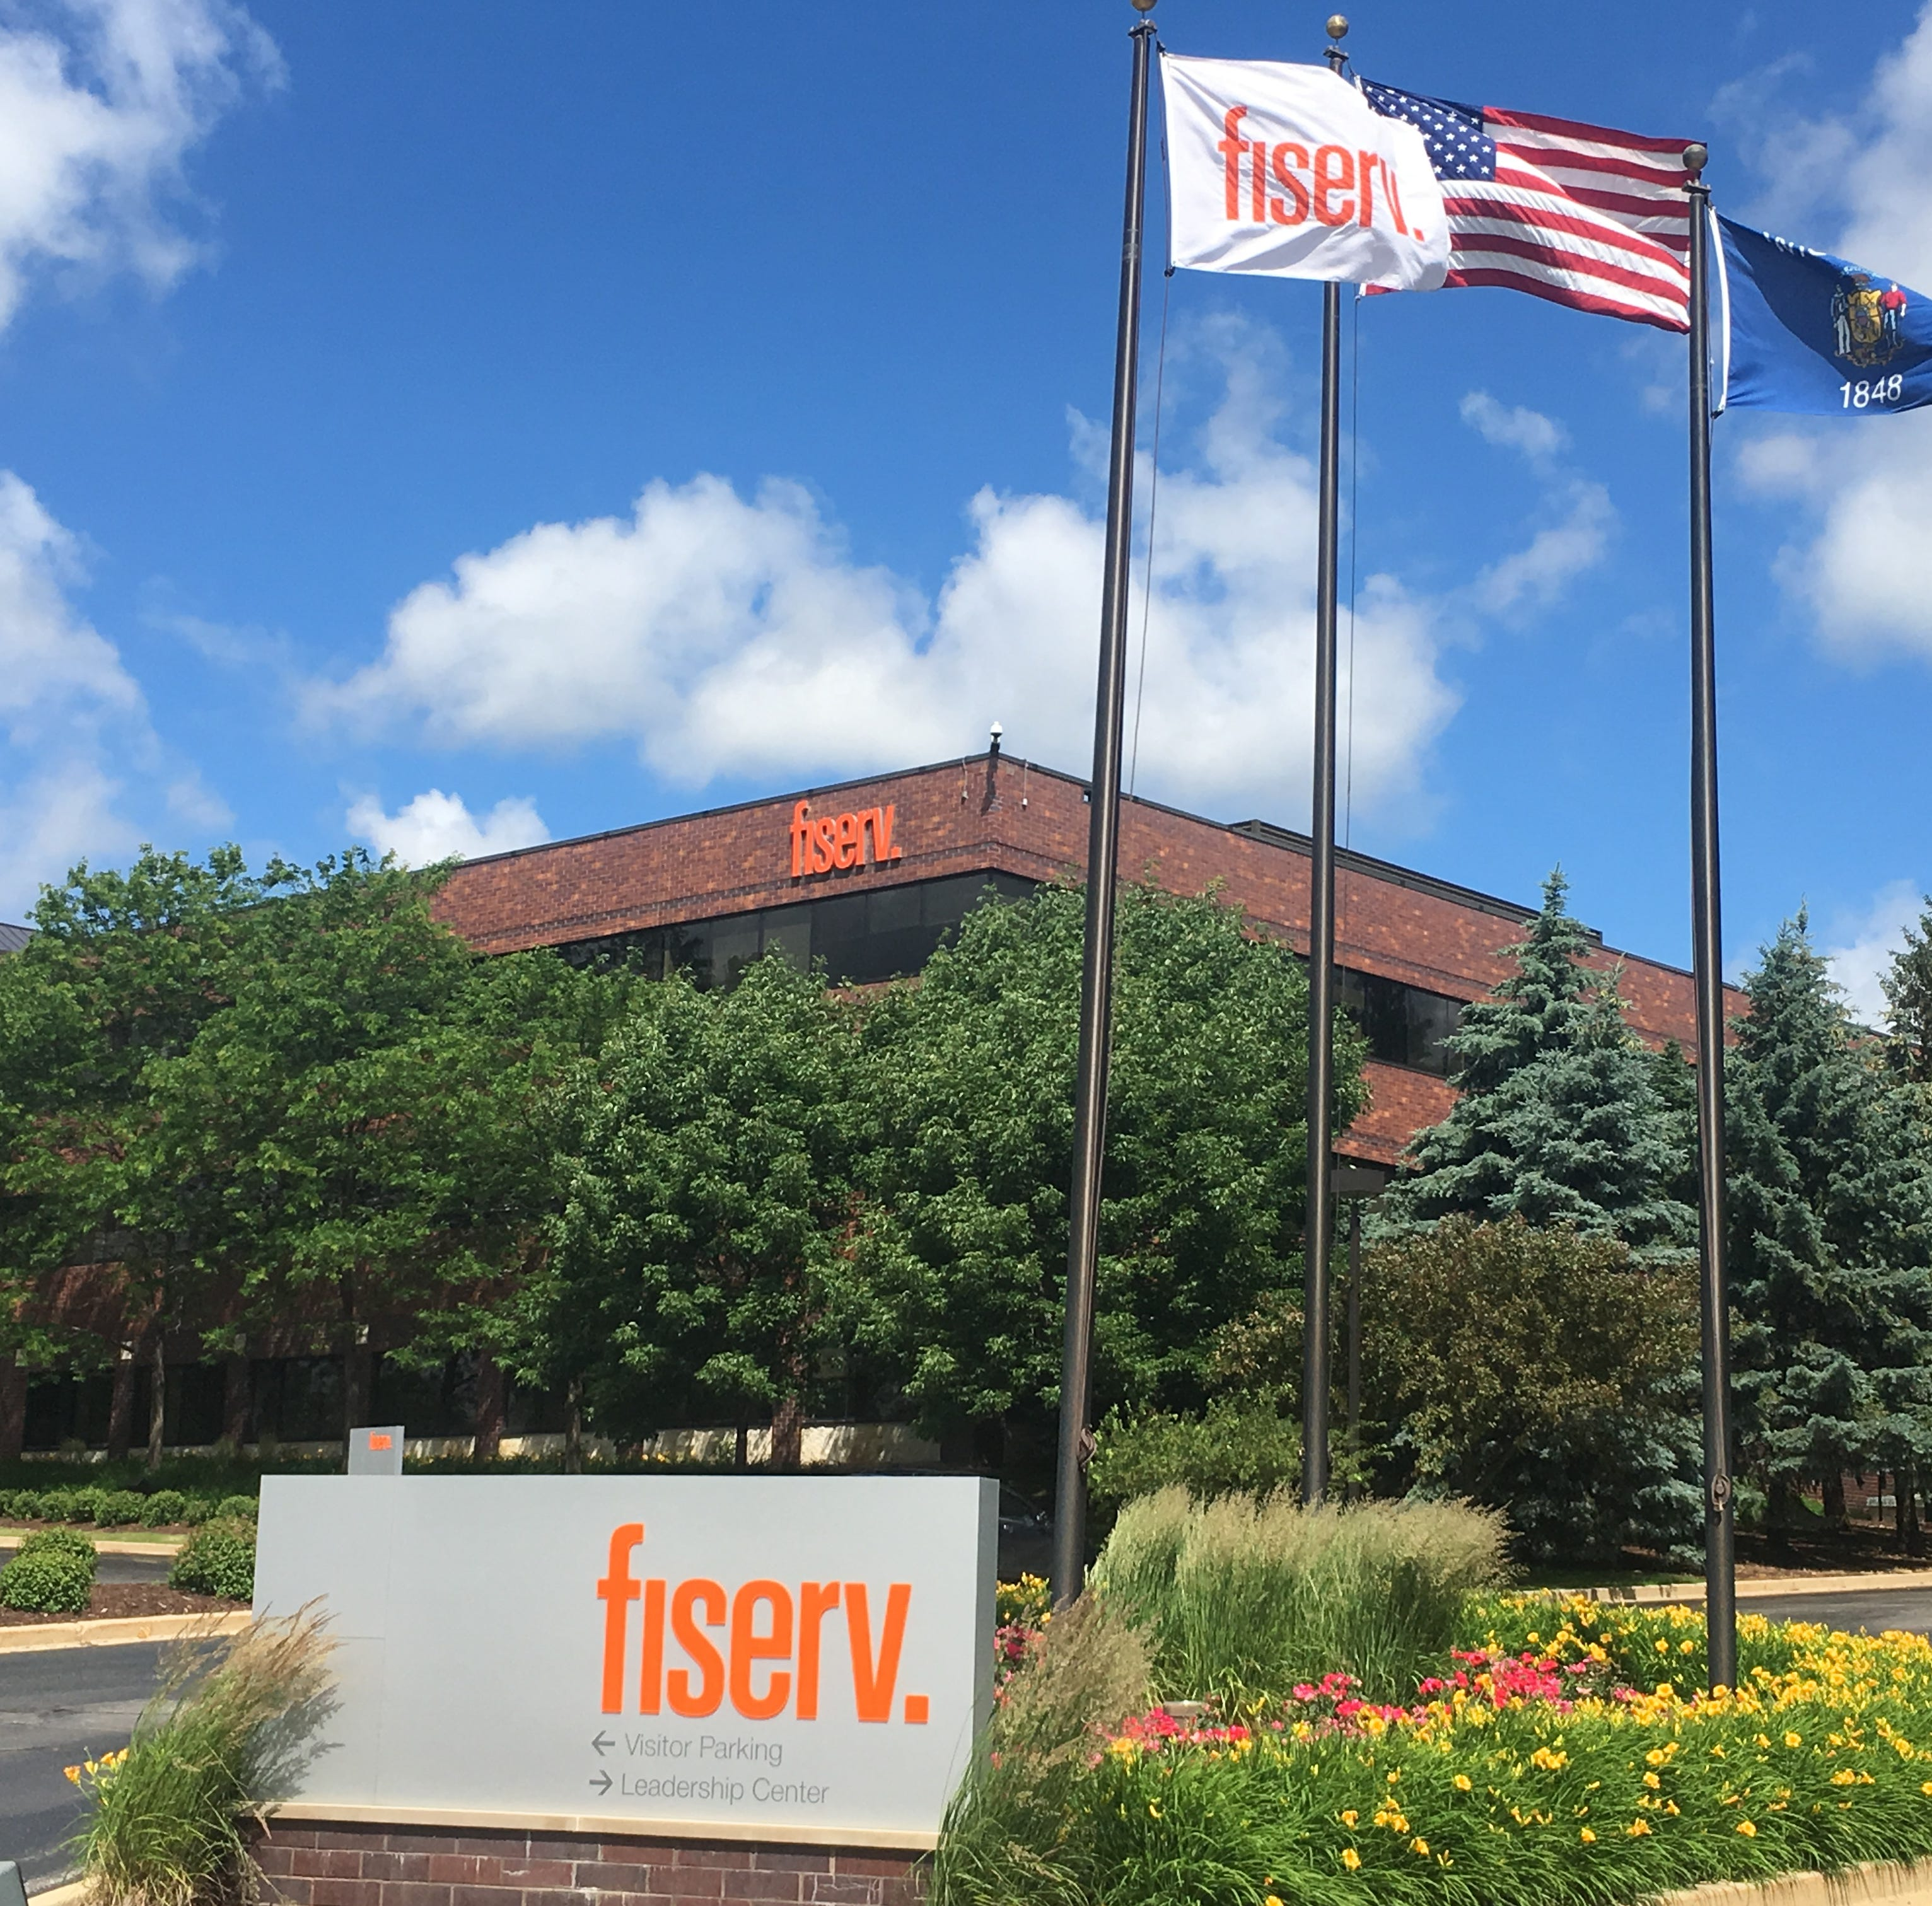 Fiserv suspends search for new headquarters site to focus on merger with First Data